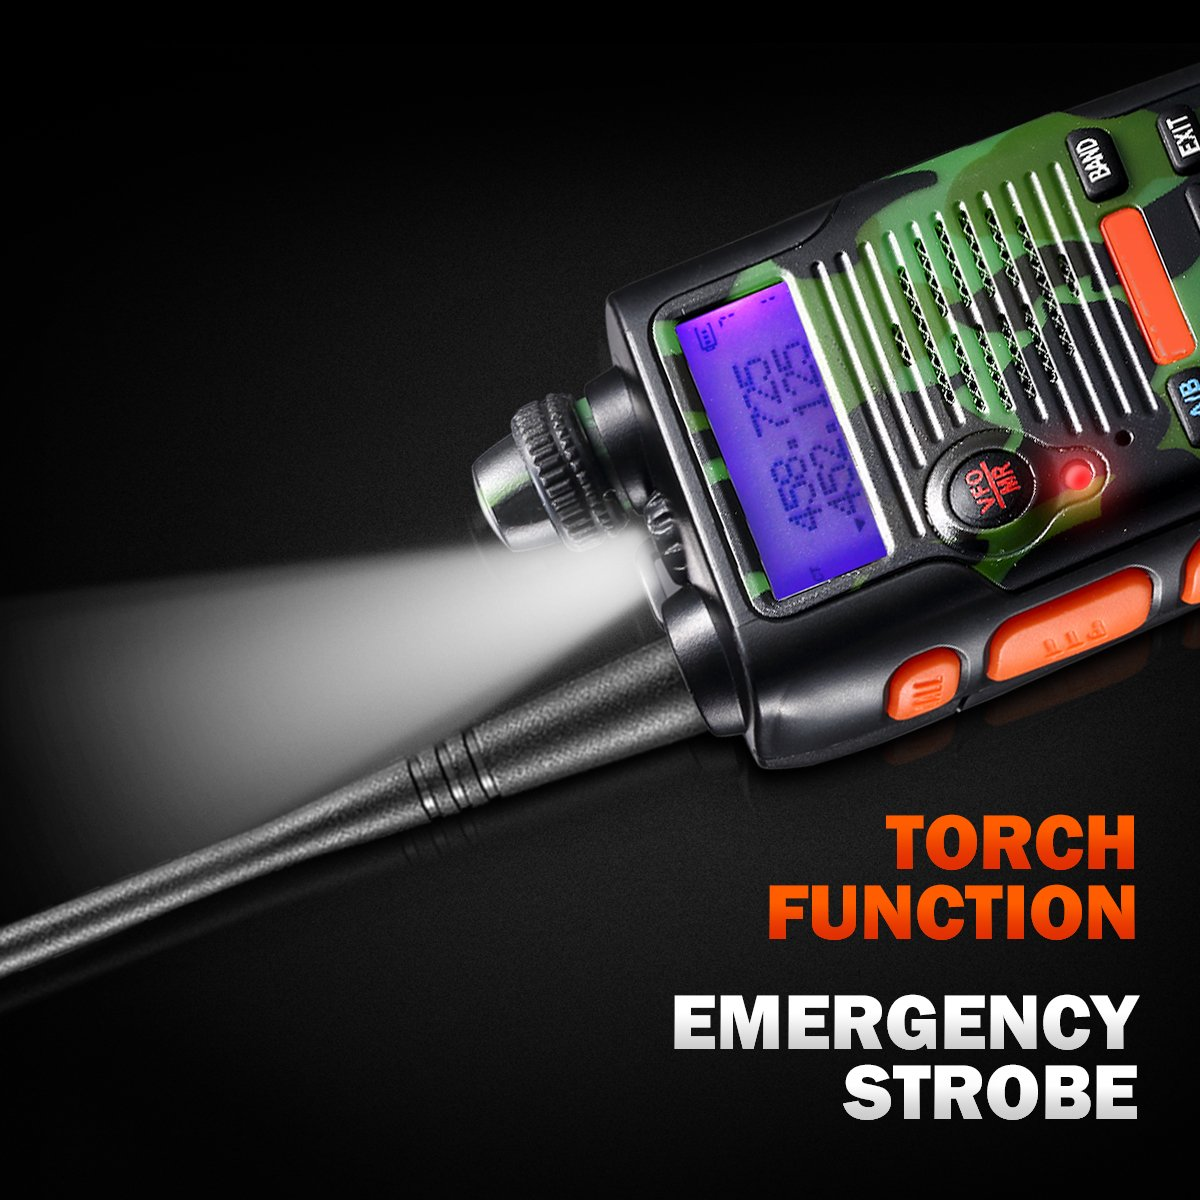 Upgraded 2800mAh 8 Watt 2800mAh Two Way Radio Rechargeable Large Battery FCC Dual Band VHF 136-174MHz and UHF 400-520MHz Long Range Water Resistant 128 Channels Walkie Talkie with Earpiece Full Kit